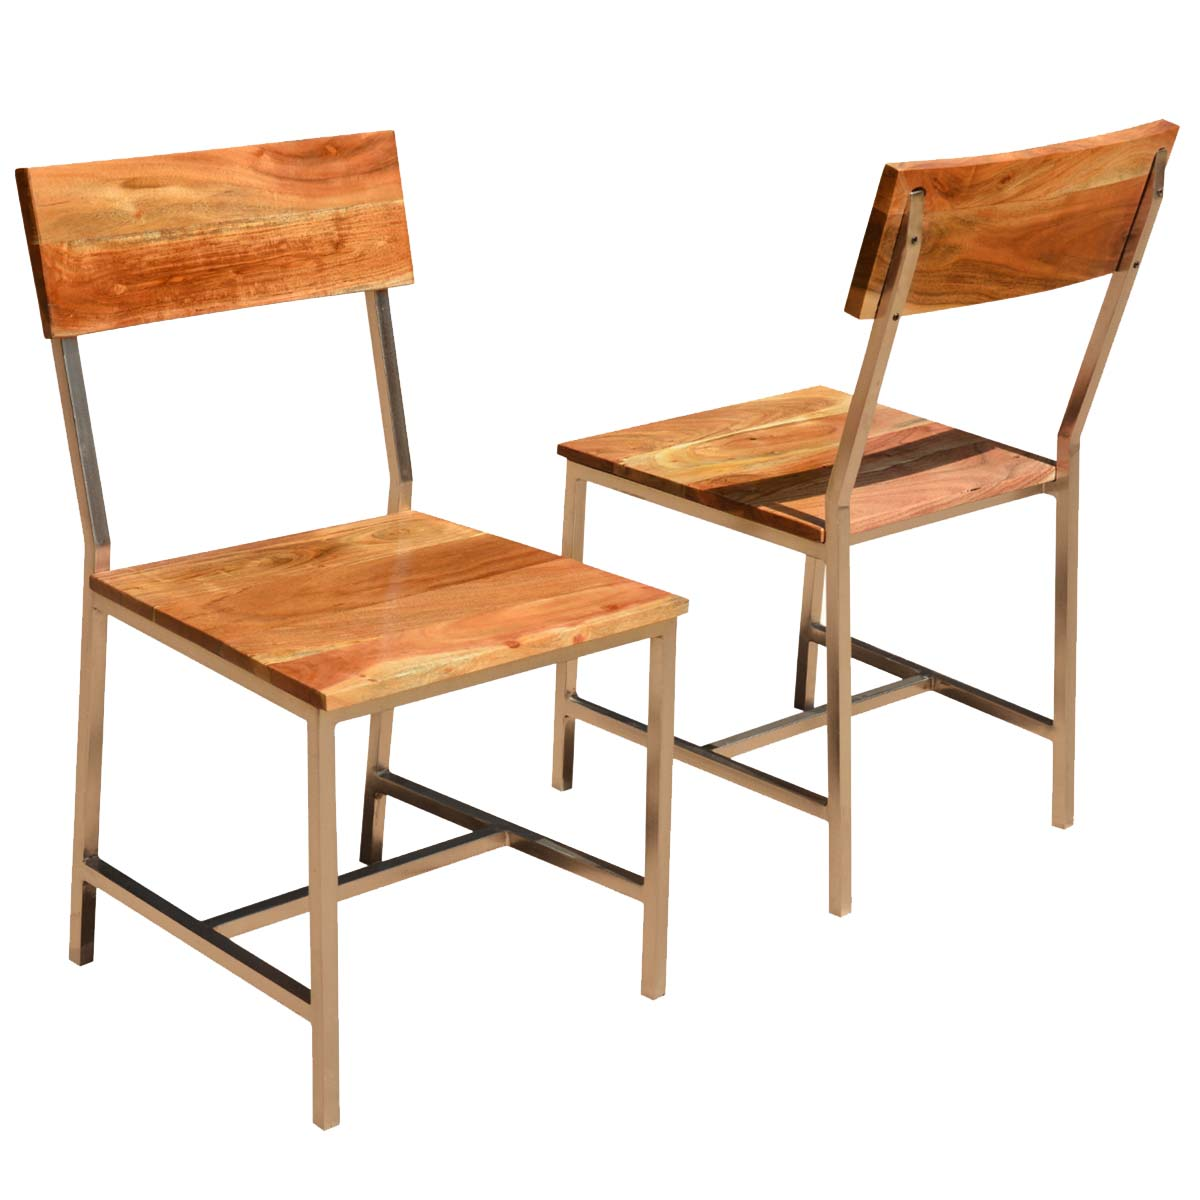 Solid wood iron rustic dining chair set of